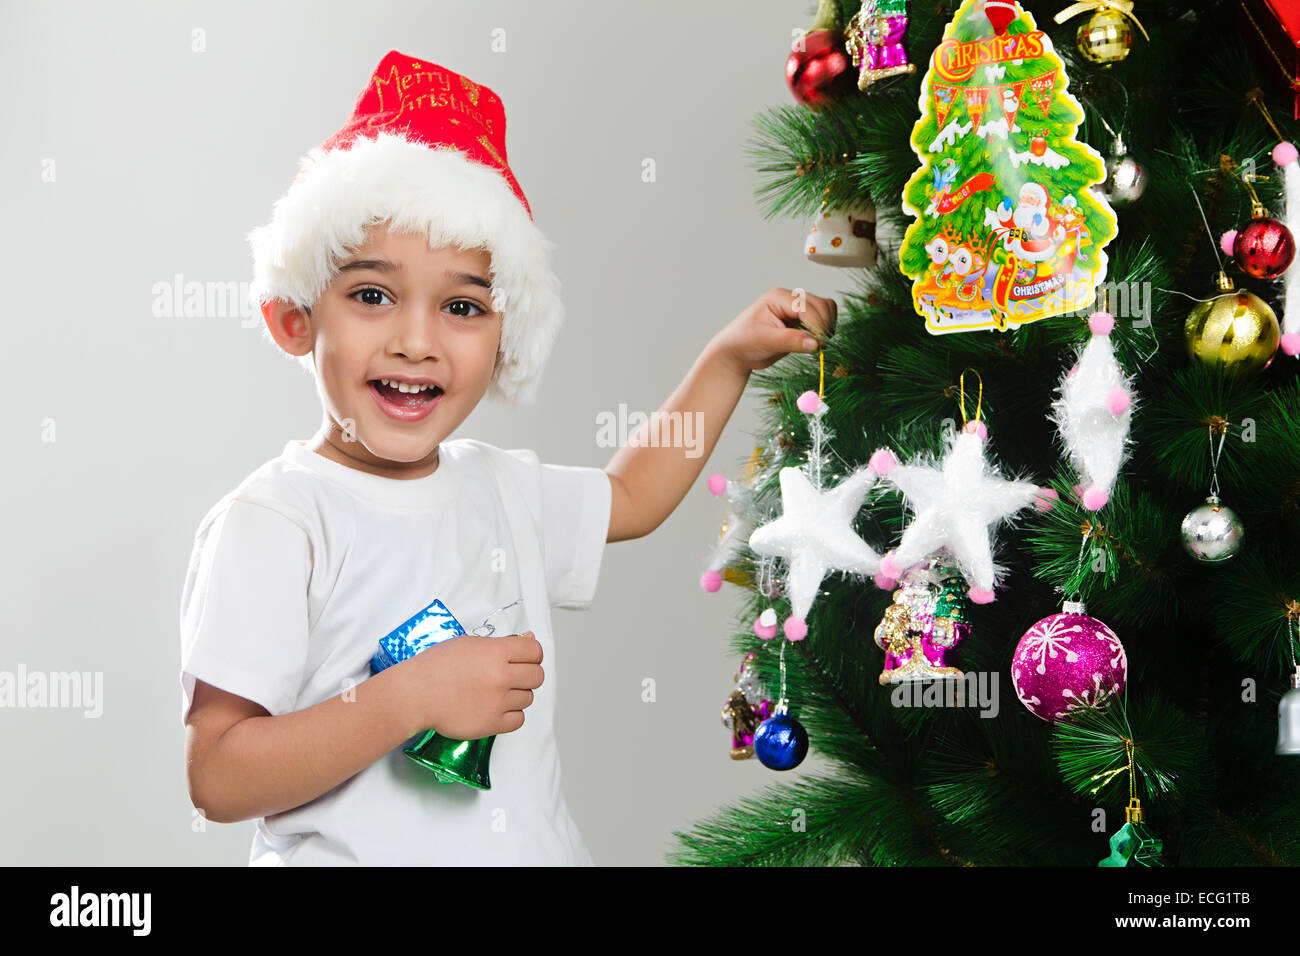 indian child Christmas Festival fun Stock Photo: 76570043 - Alamy